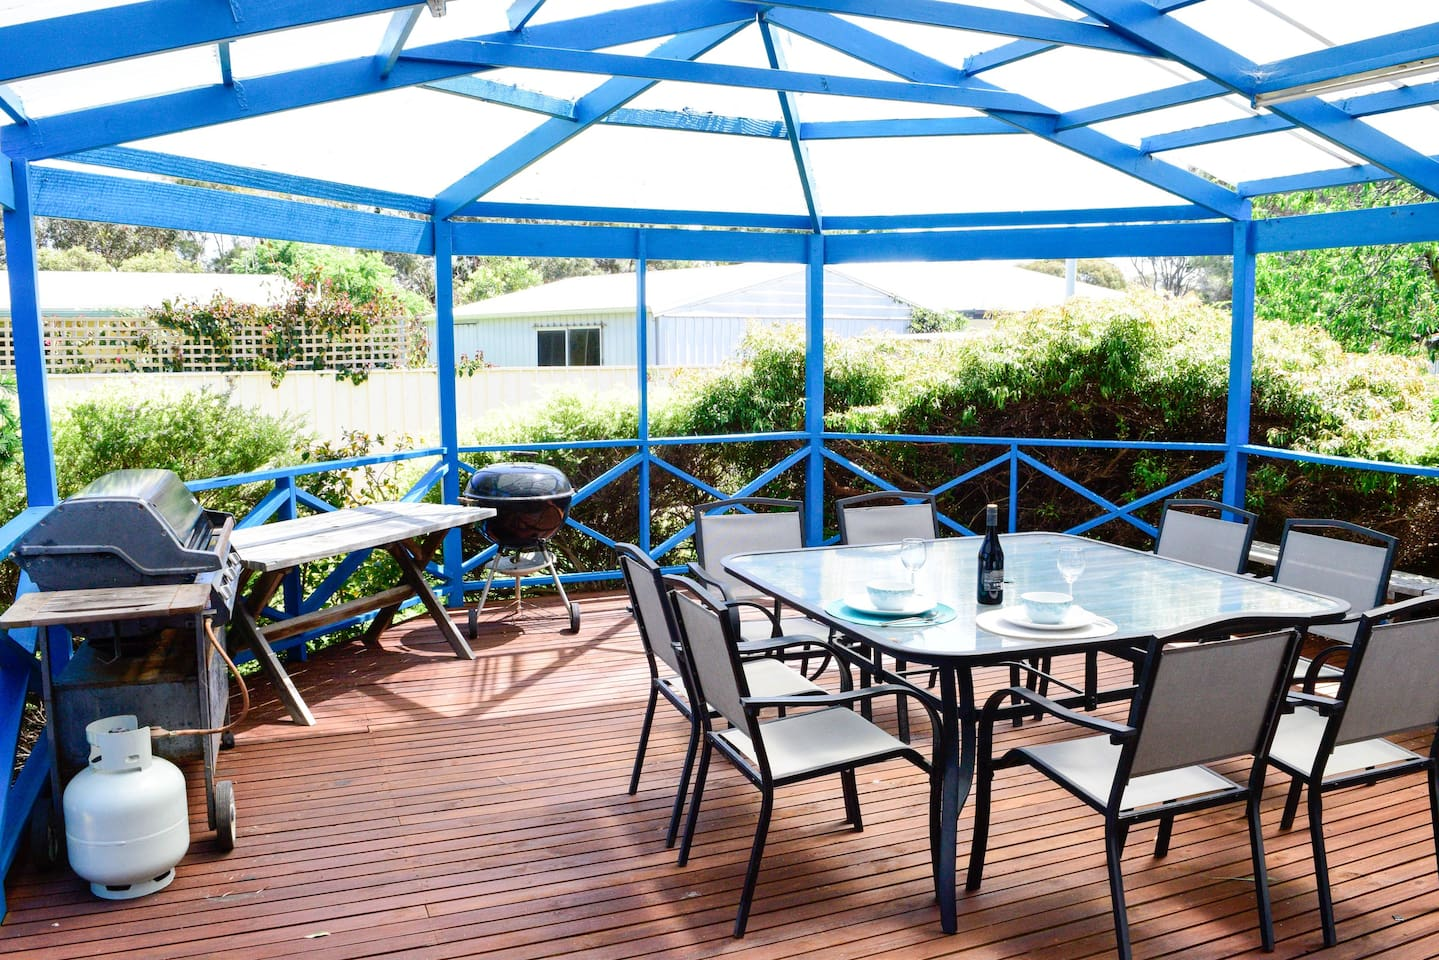 Stunning undercover deck with seating for 8 - hear the ocean and the birds while you dine